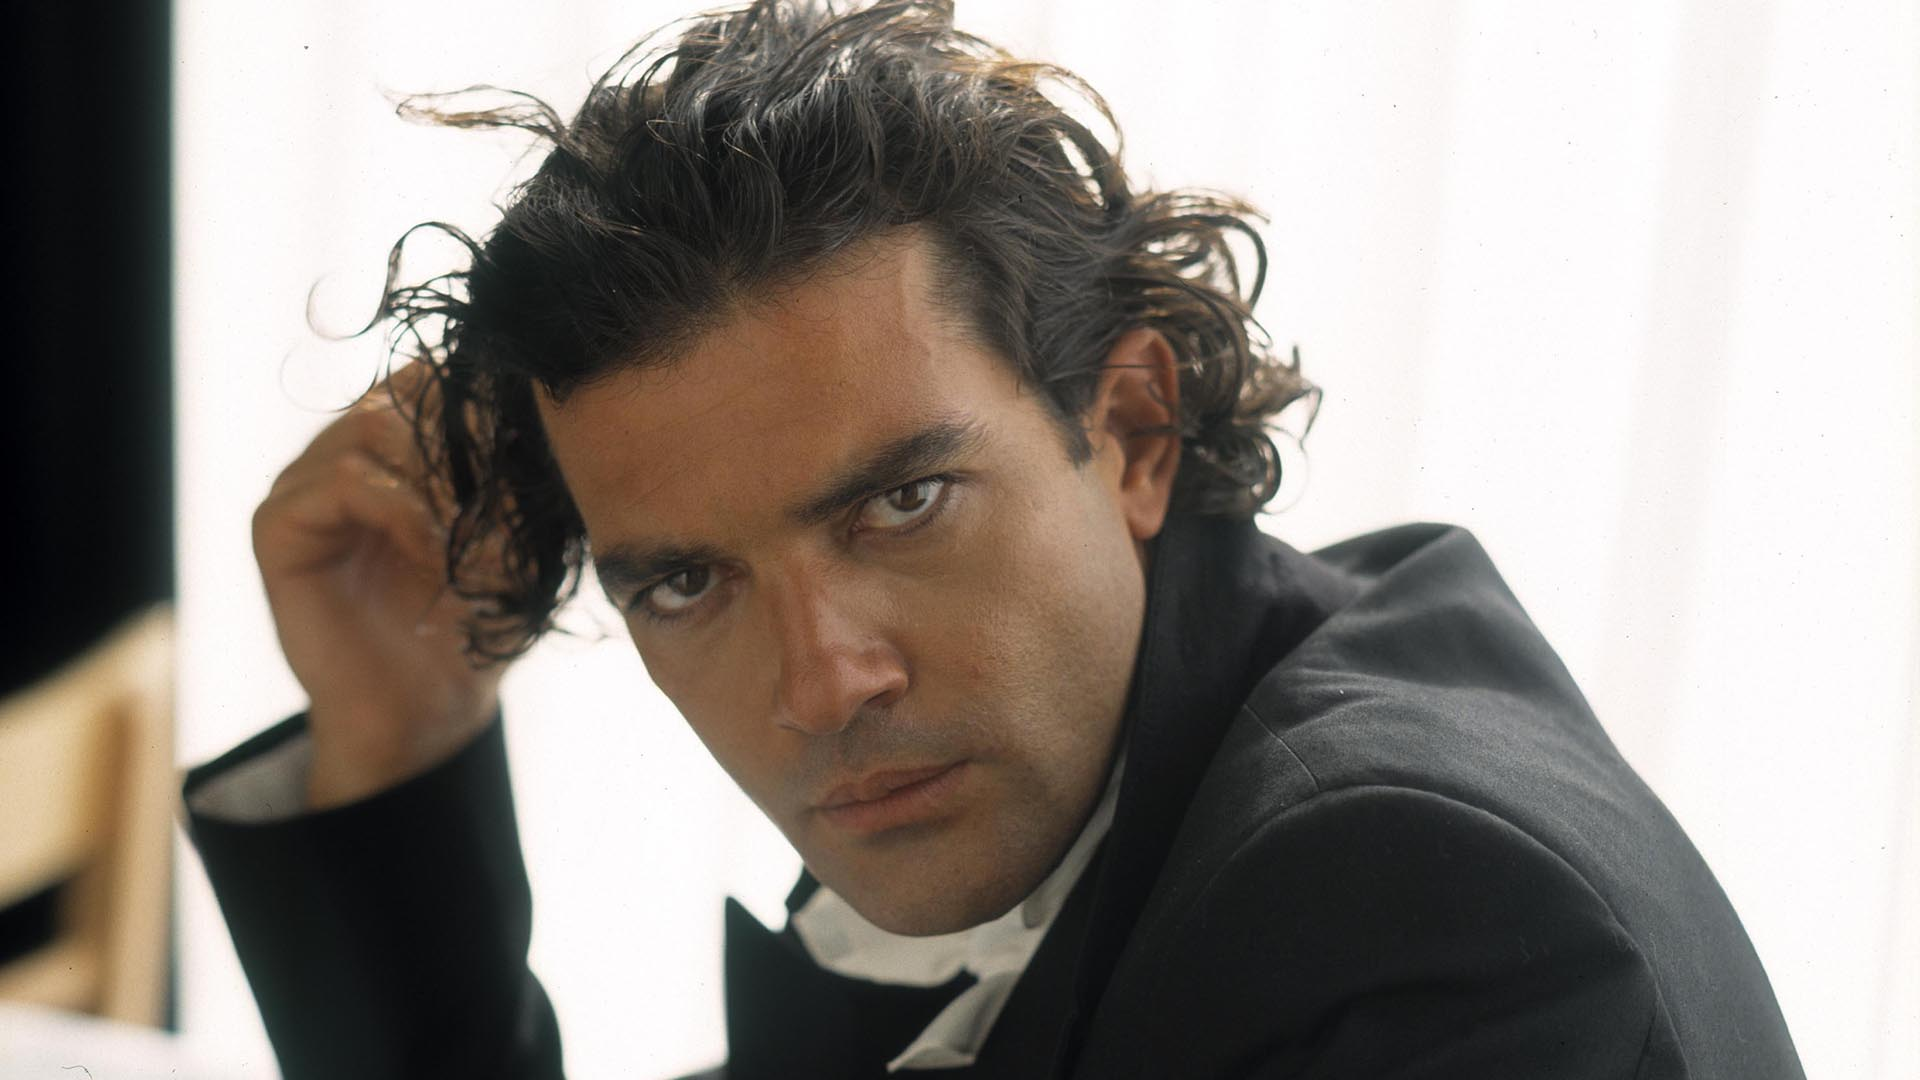 Antonio Banderas Wallpapers High Quality | Download Free Antonio Banderas Movies